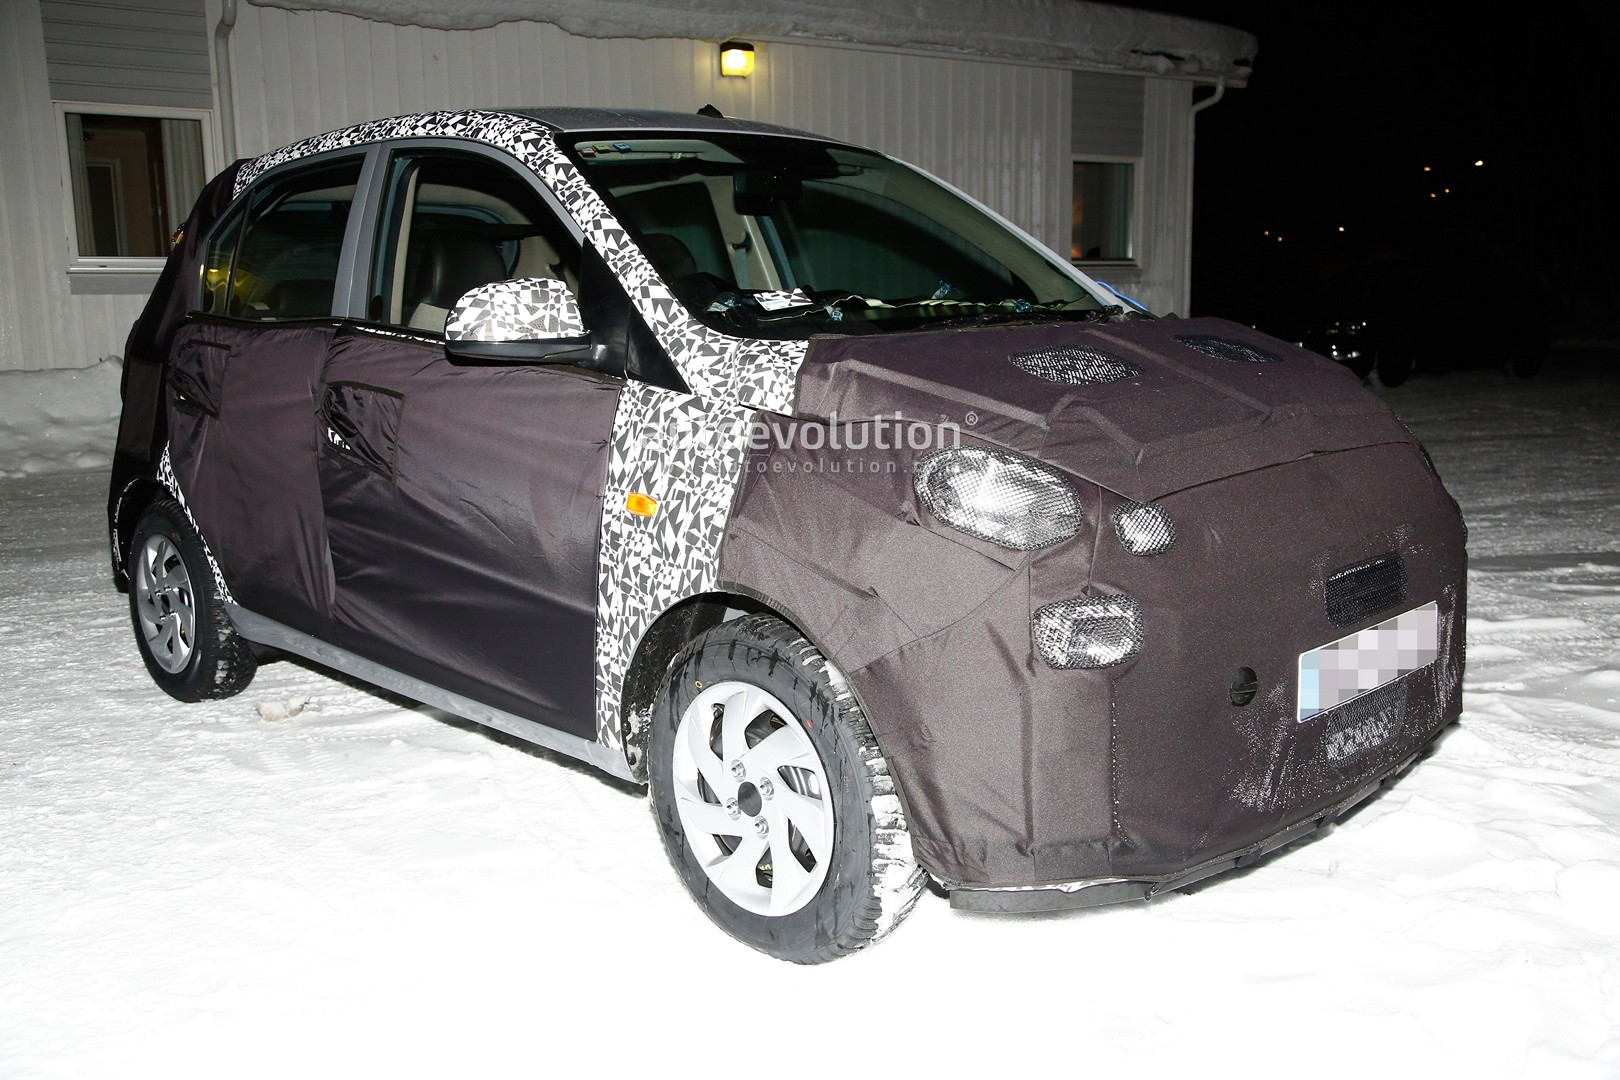 indian hyundai santro spied undergoing winter testing in europe, is